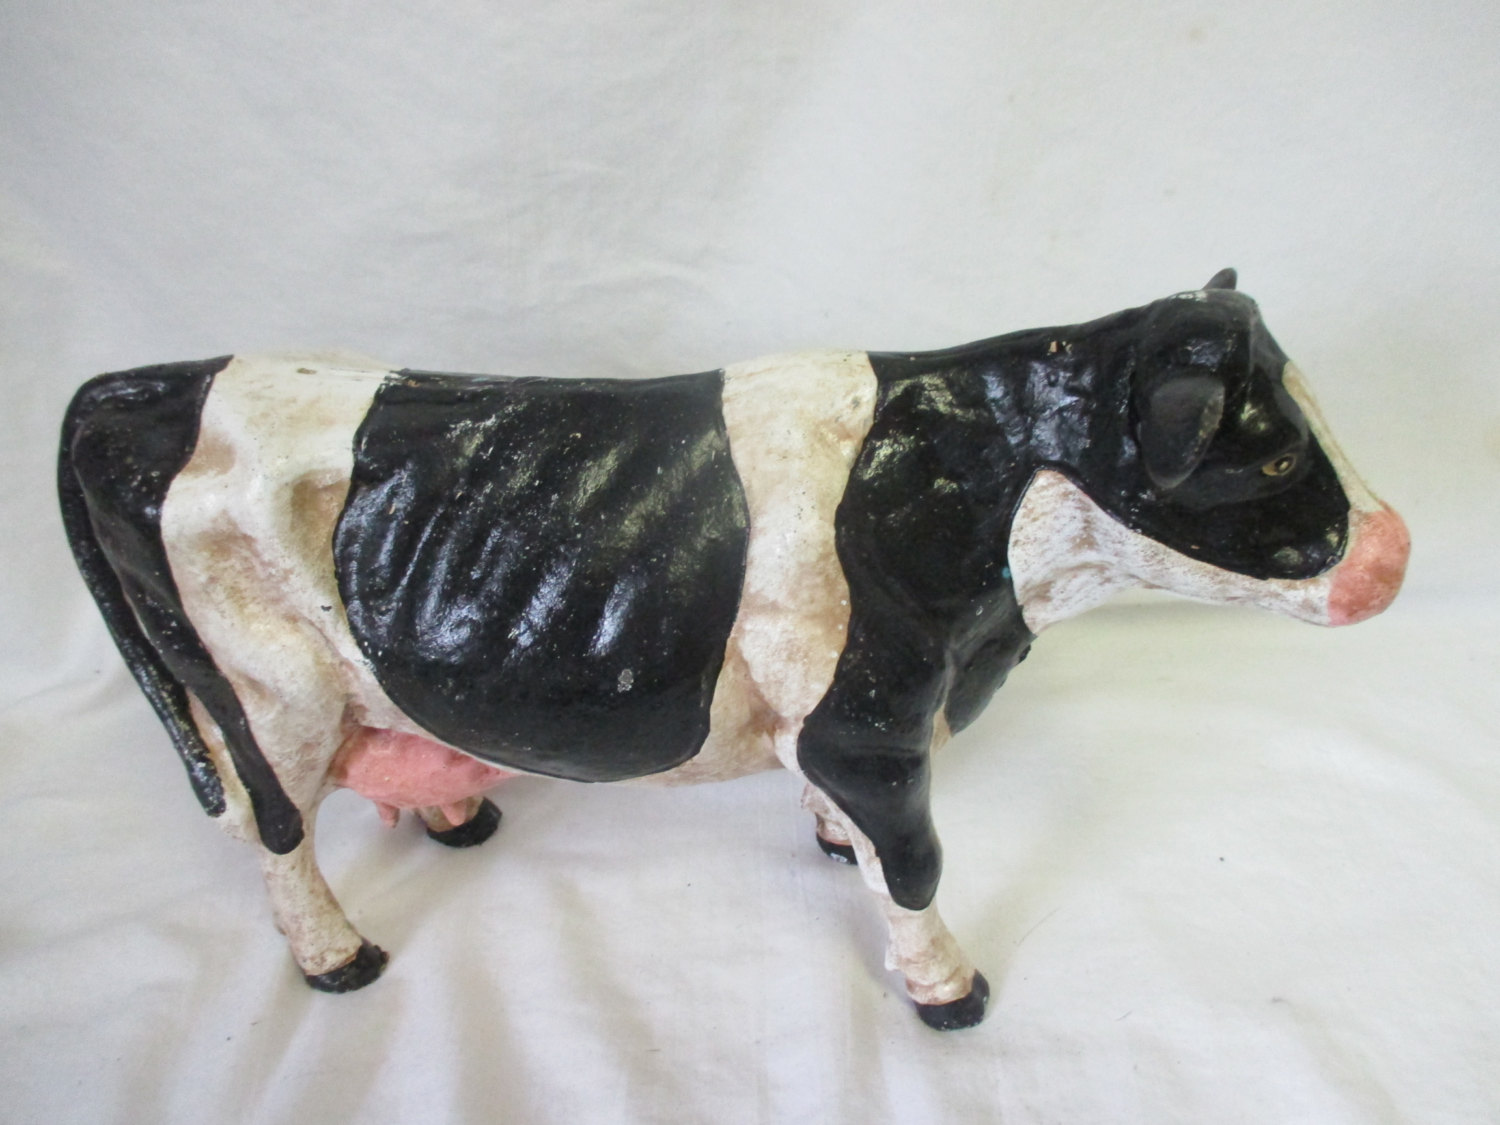 Large Heavy Cast Iron Cow Dairy Farm Animal Country Decor Doorstop Statue  Display Kitchen Decor Farmhouse